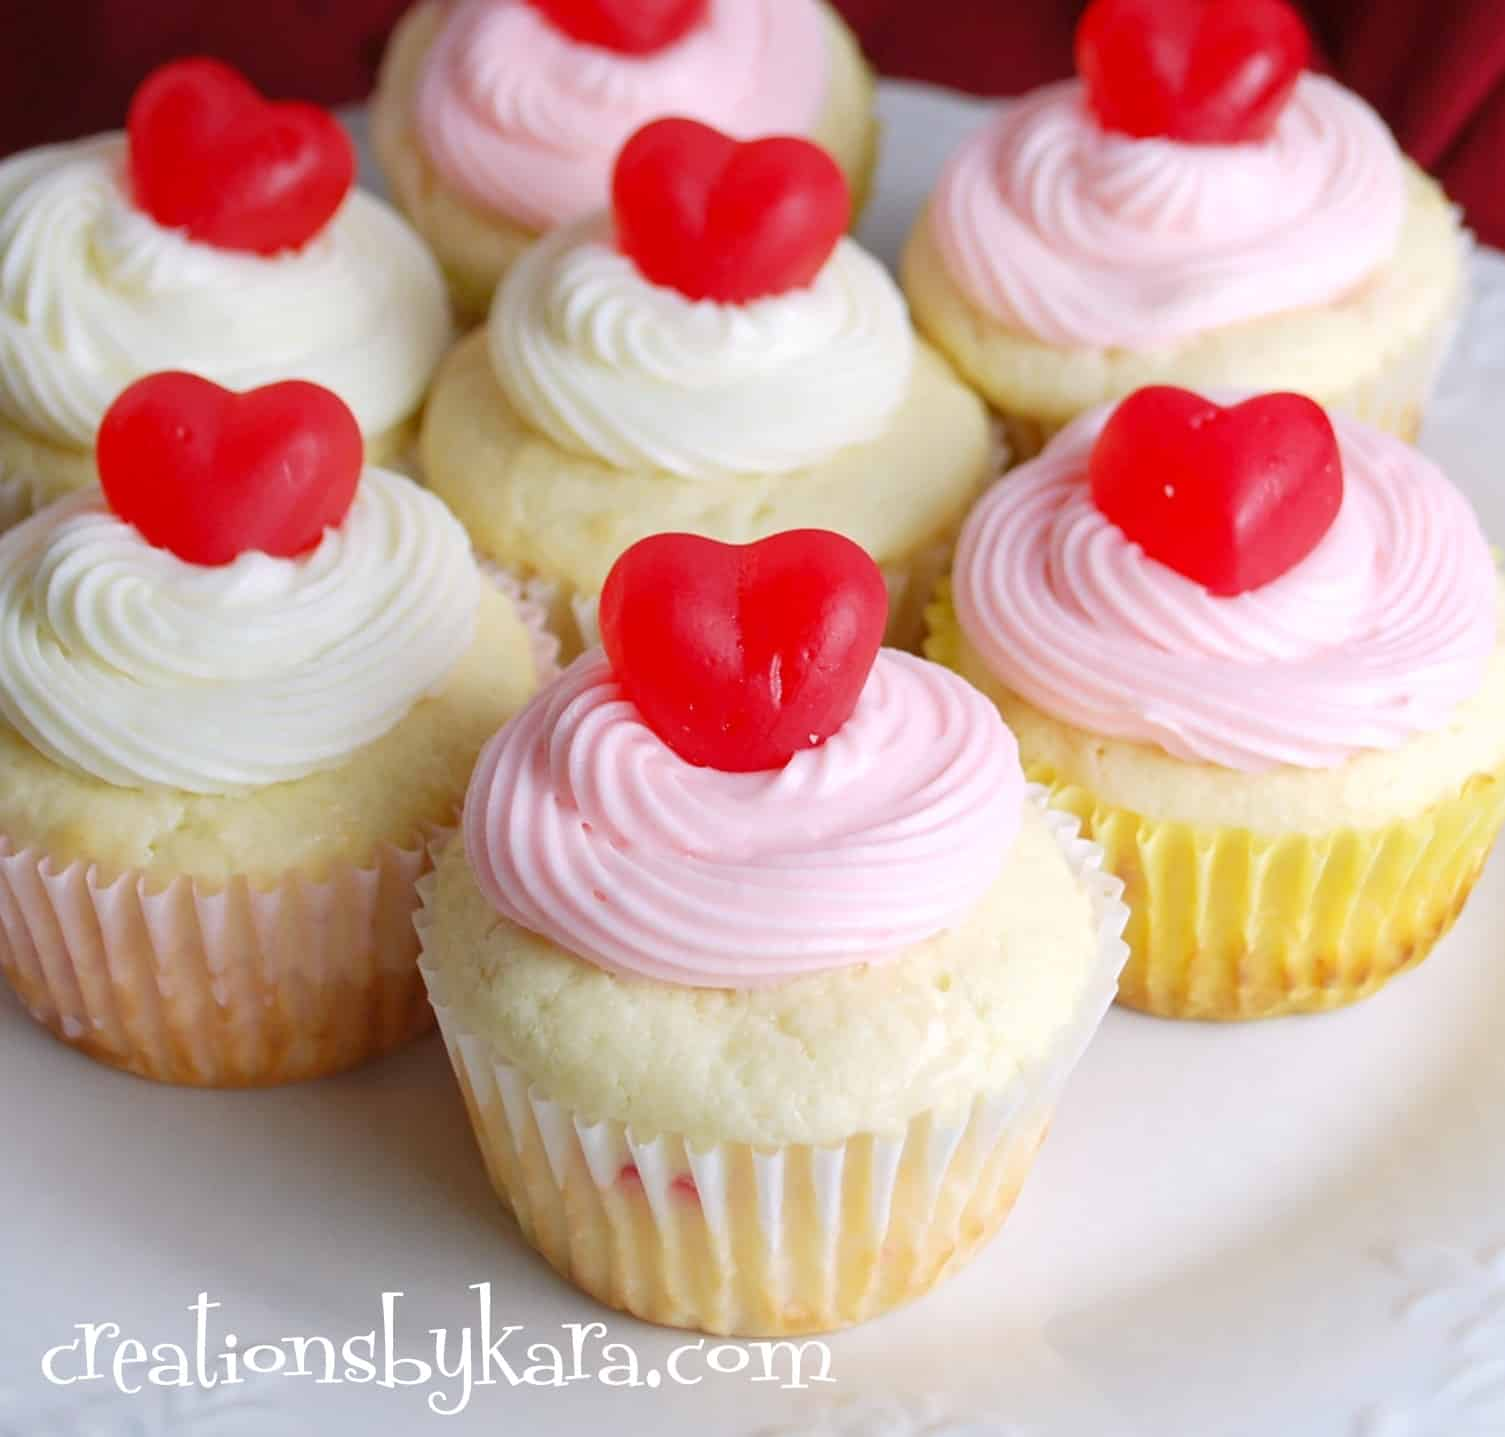 Cupcakes Cute Wallpaper Cherry Cheesecake Cupcakes For Valentine S Day